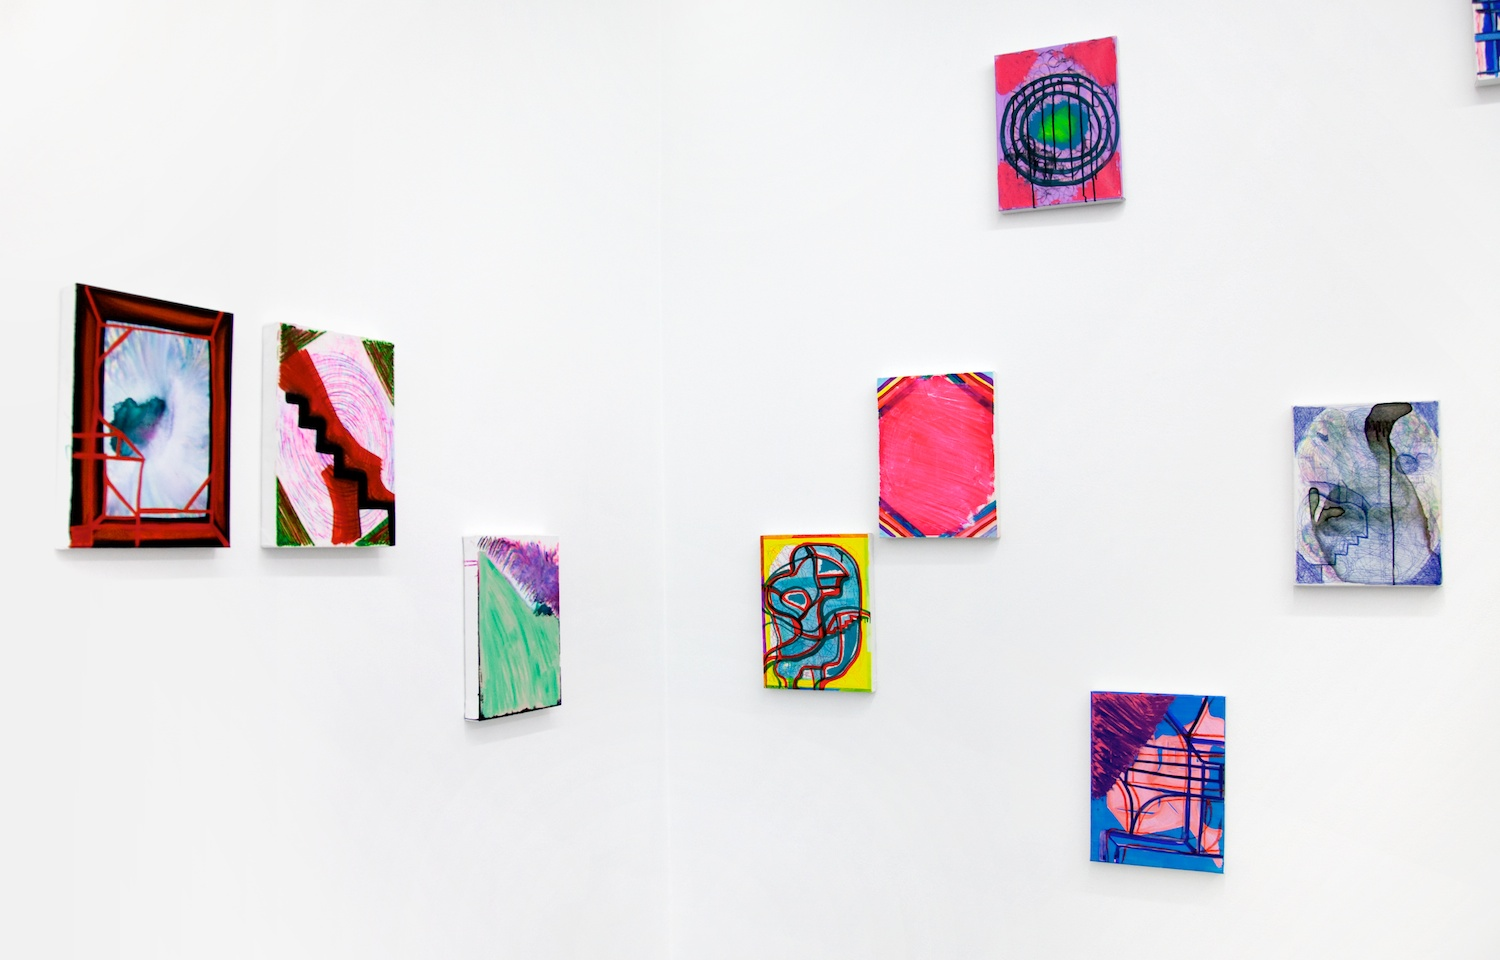 Joanne Greenbaum 2012 Shane Campbell Gallery, Chicago Installation View